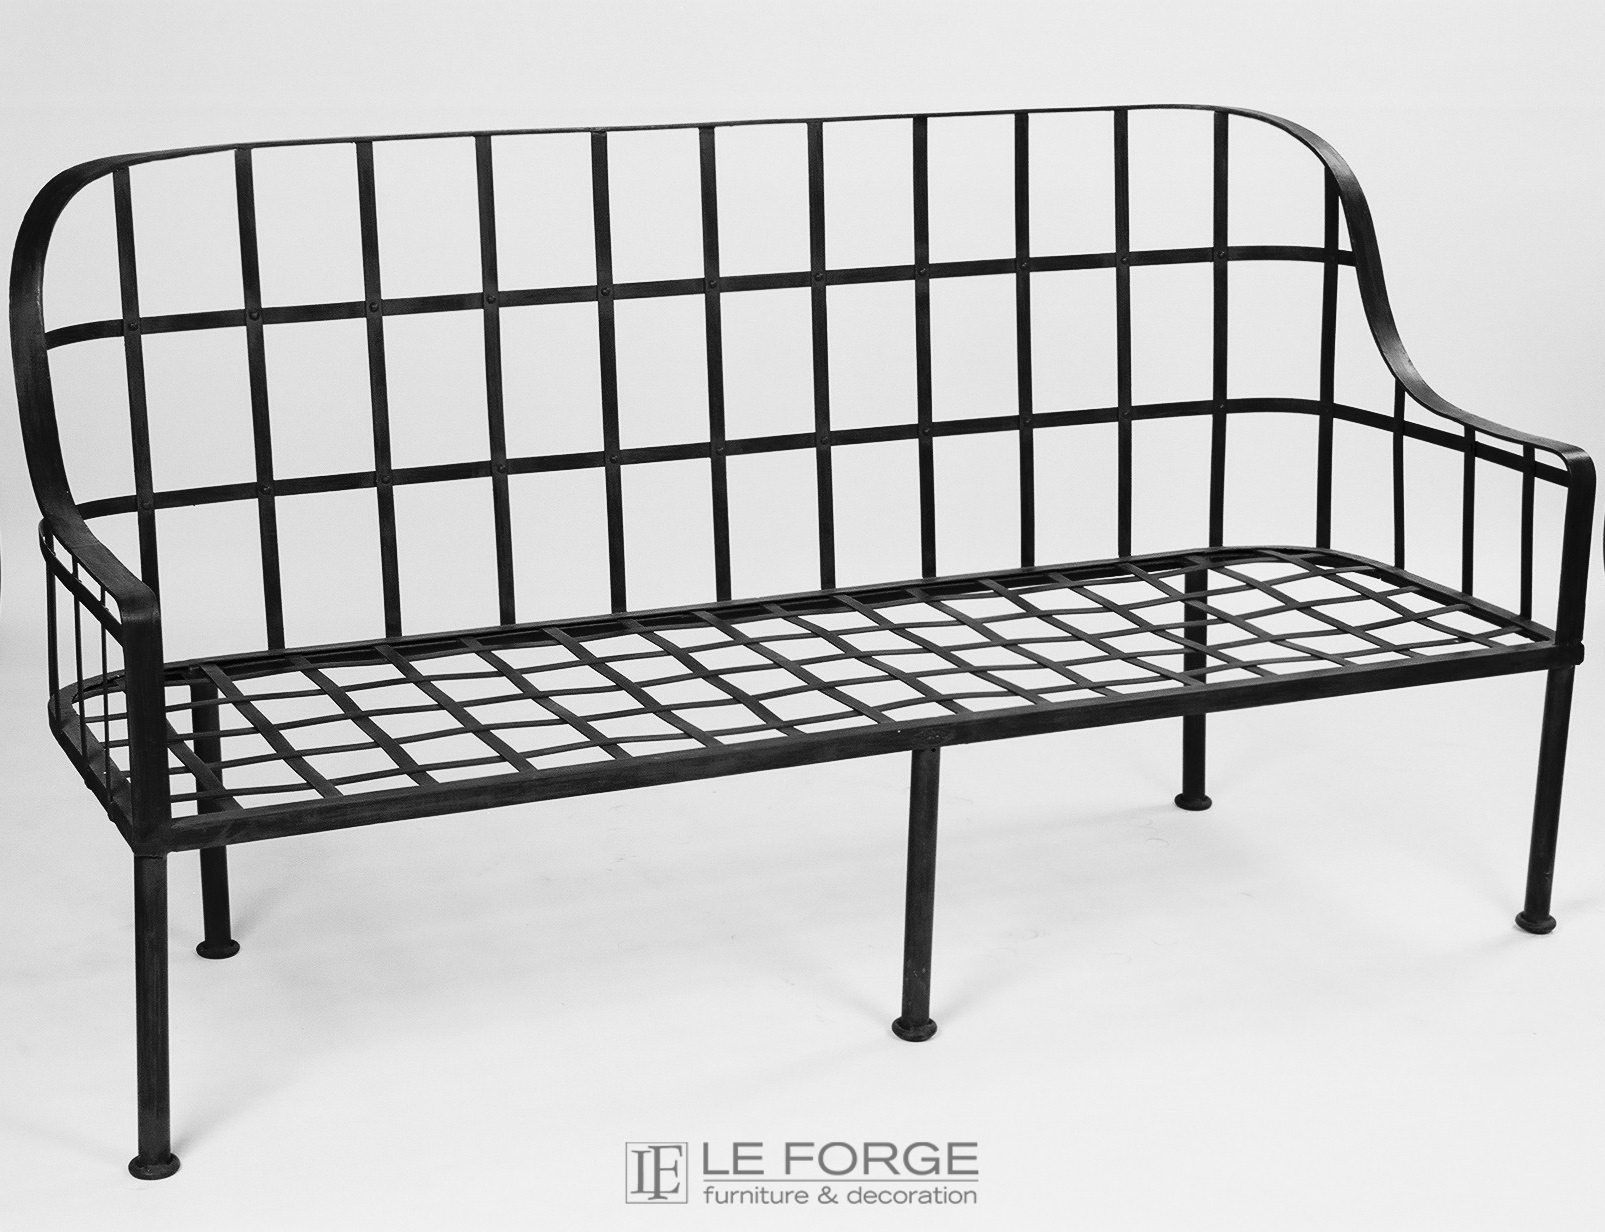 La Spezia 2 Seater Hand Forged Steel Wrought Iron